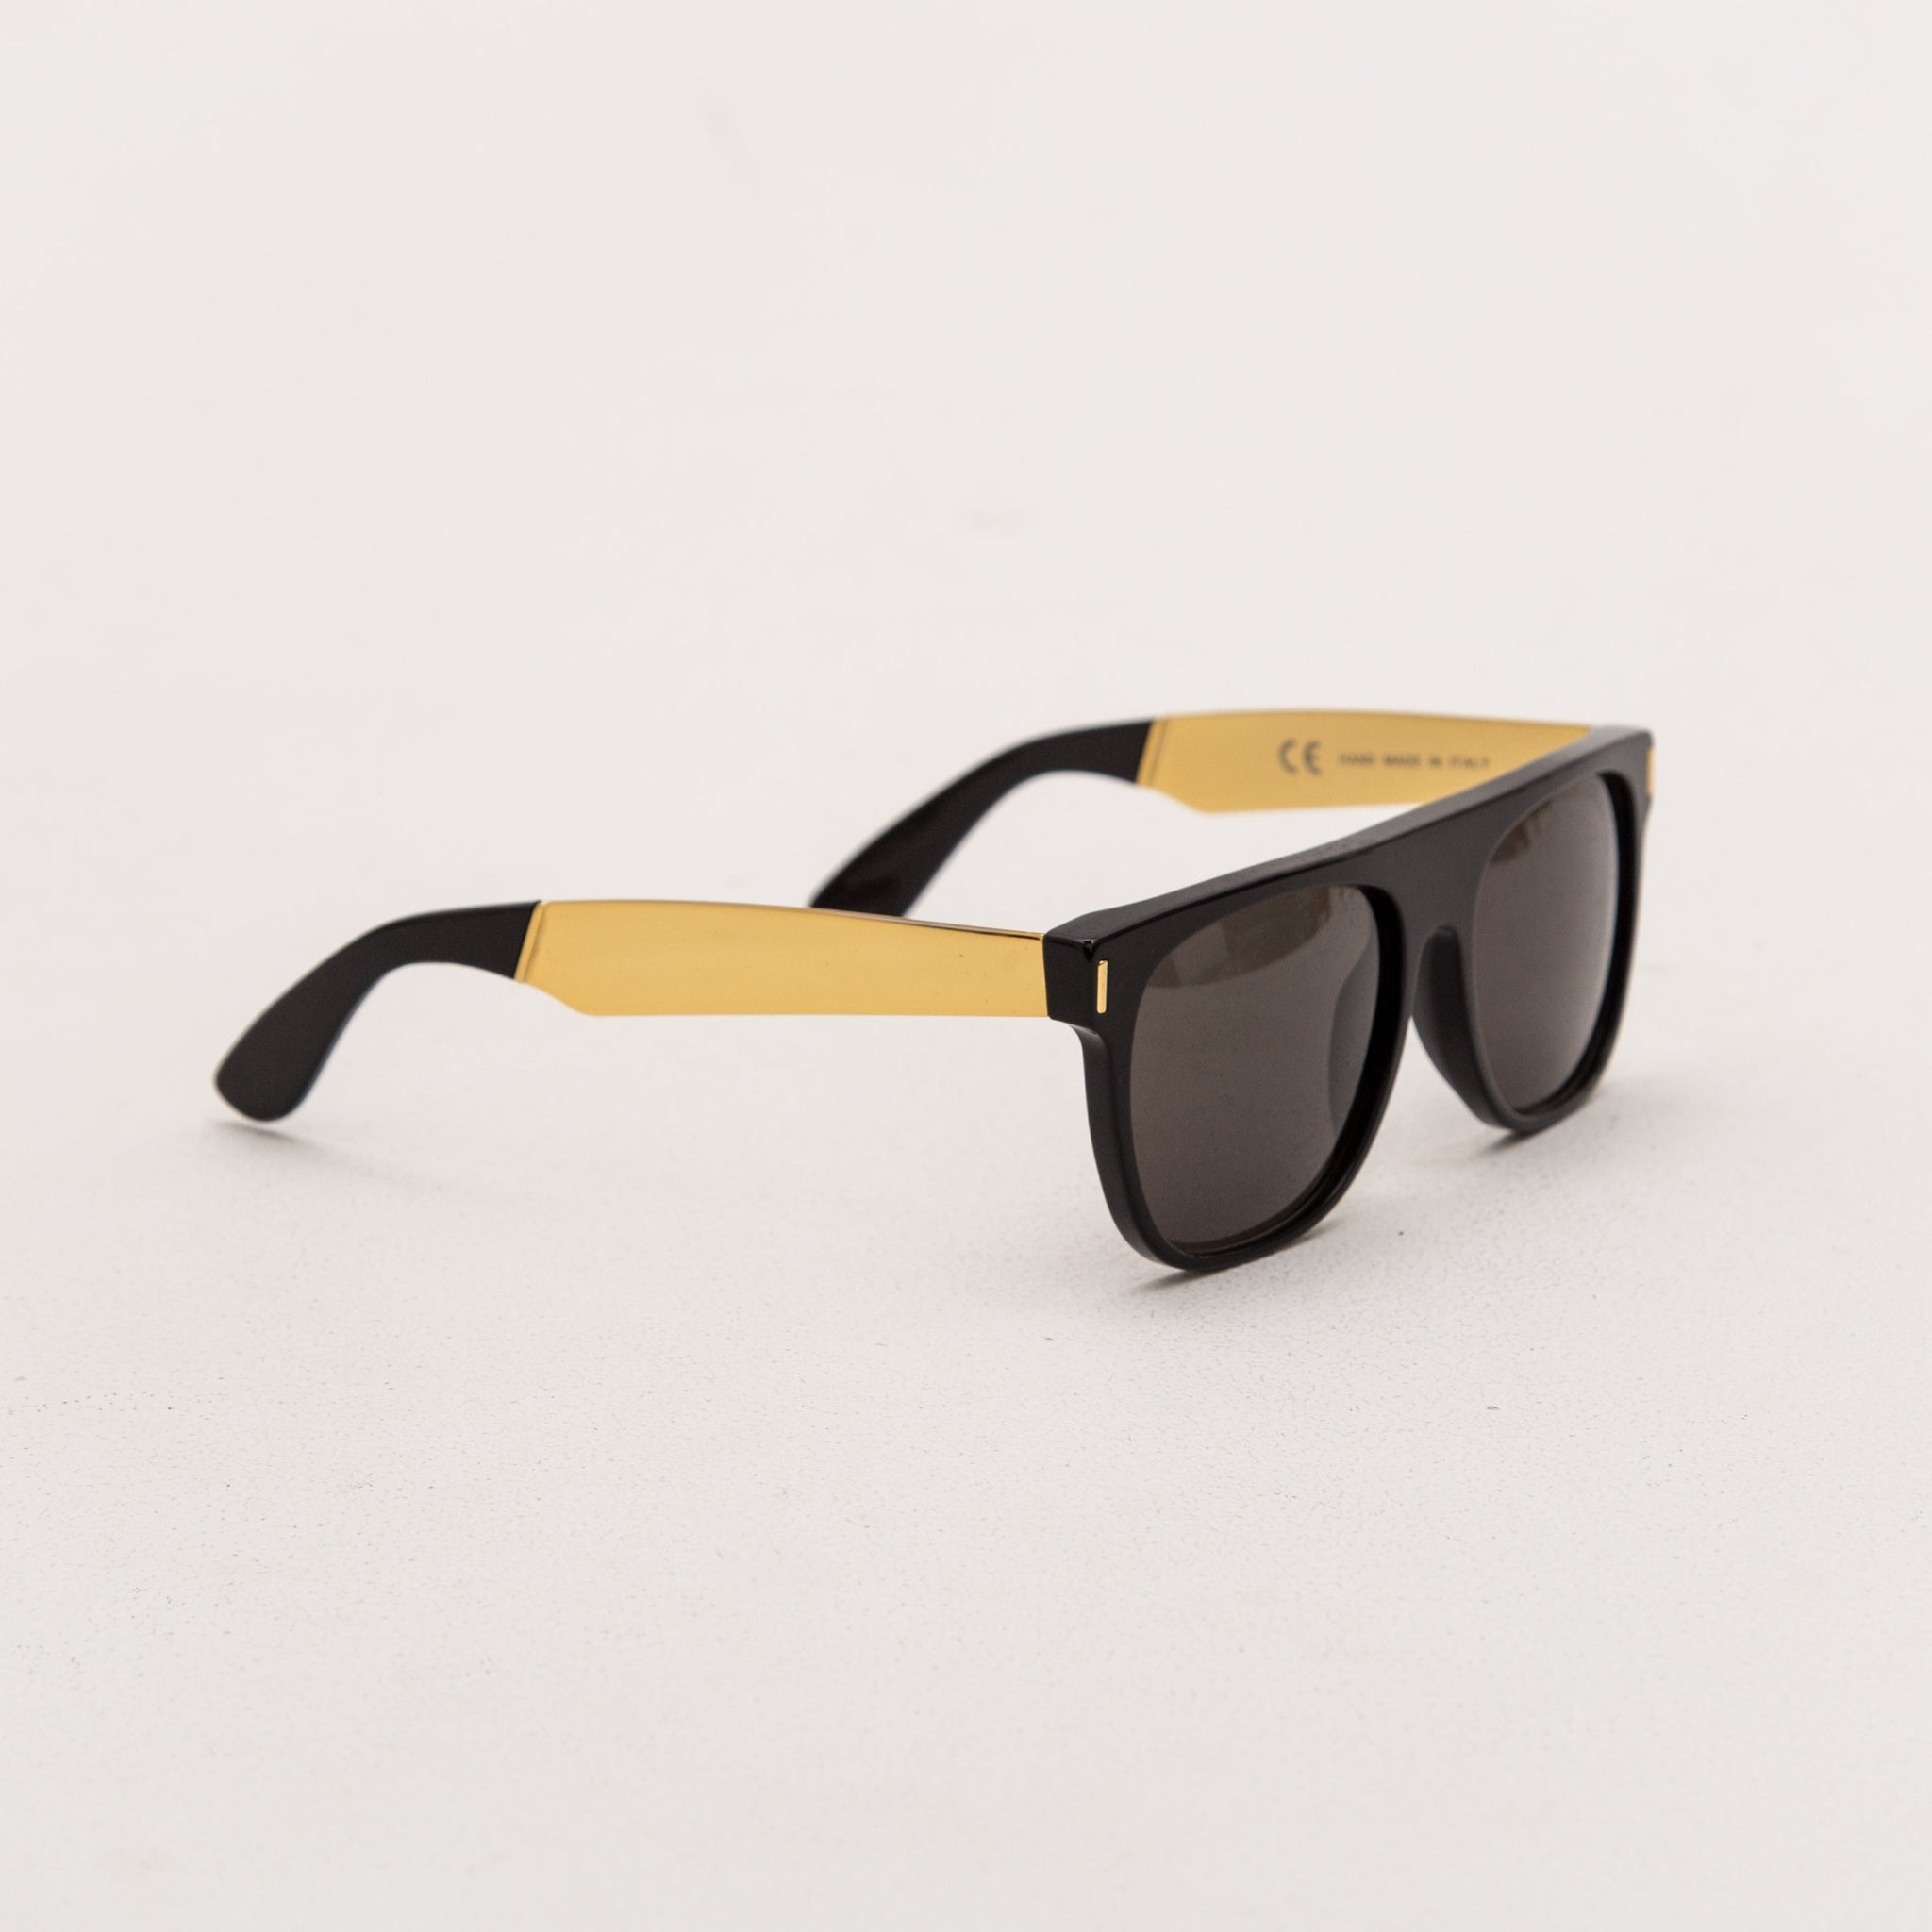 Super Flat Top Sunglasses - Francis Black Gold NIM | AStore